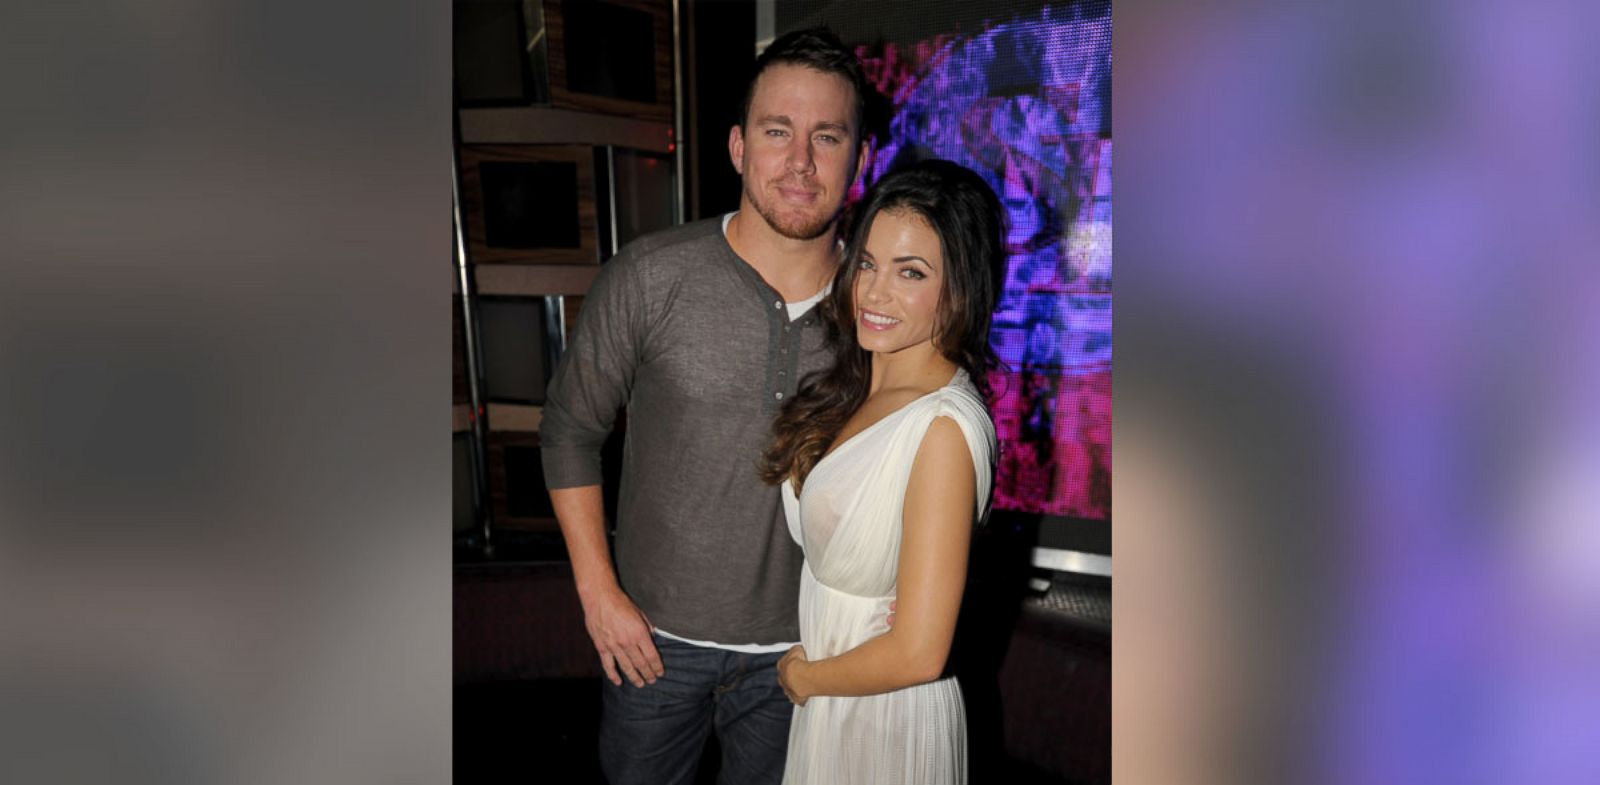 PHOTO: Ocean Drive Magazine celebrates its 21st anniversary issue with Channing Tatum, left, and Jenna Dewan-Tatum, right, at SL Miami in Miami Beach, Fla. on Jan. 21, 2014.